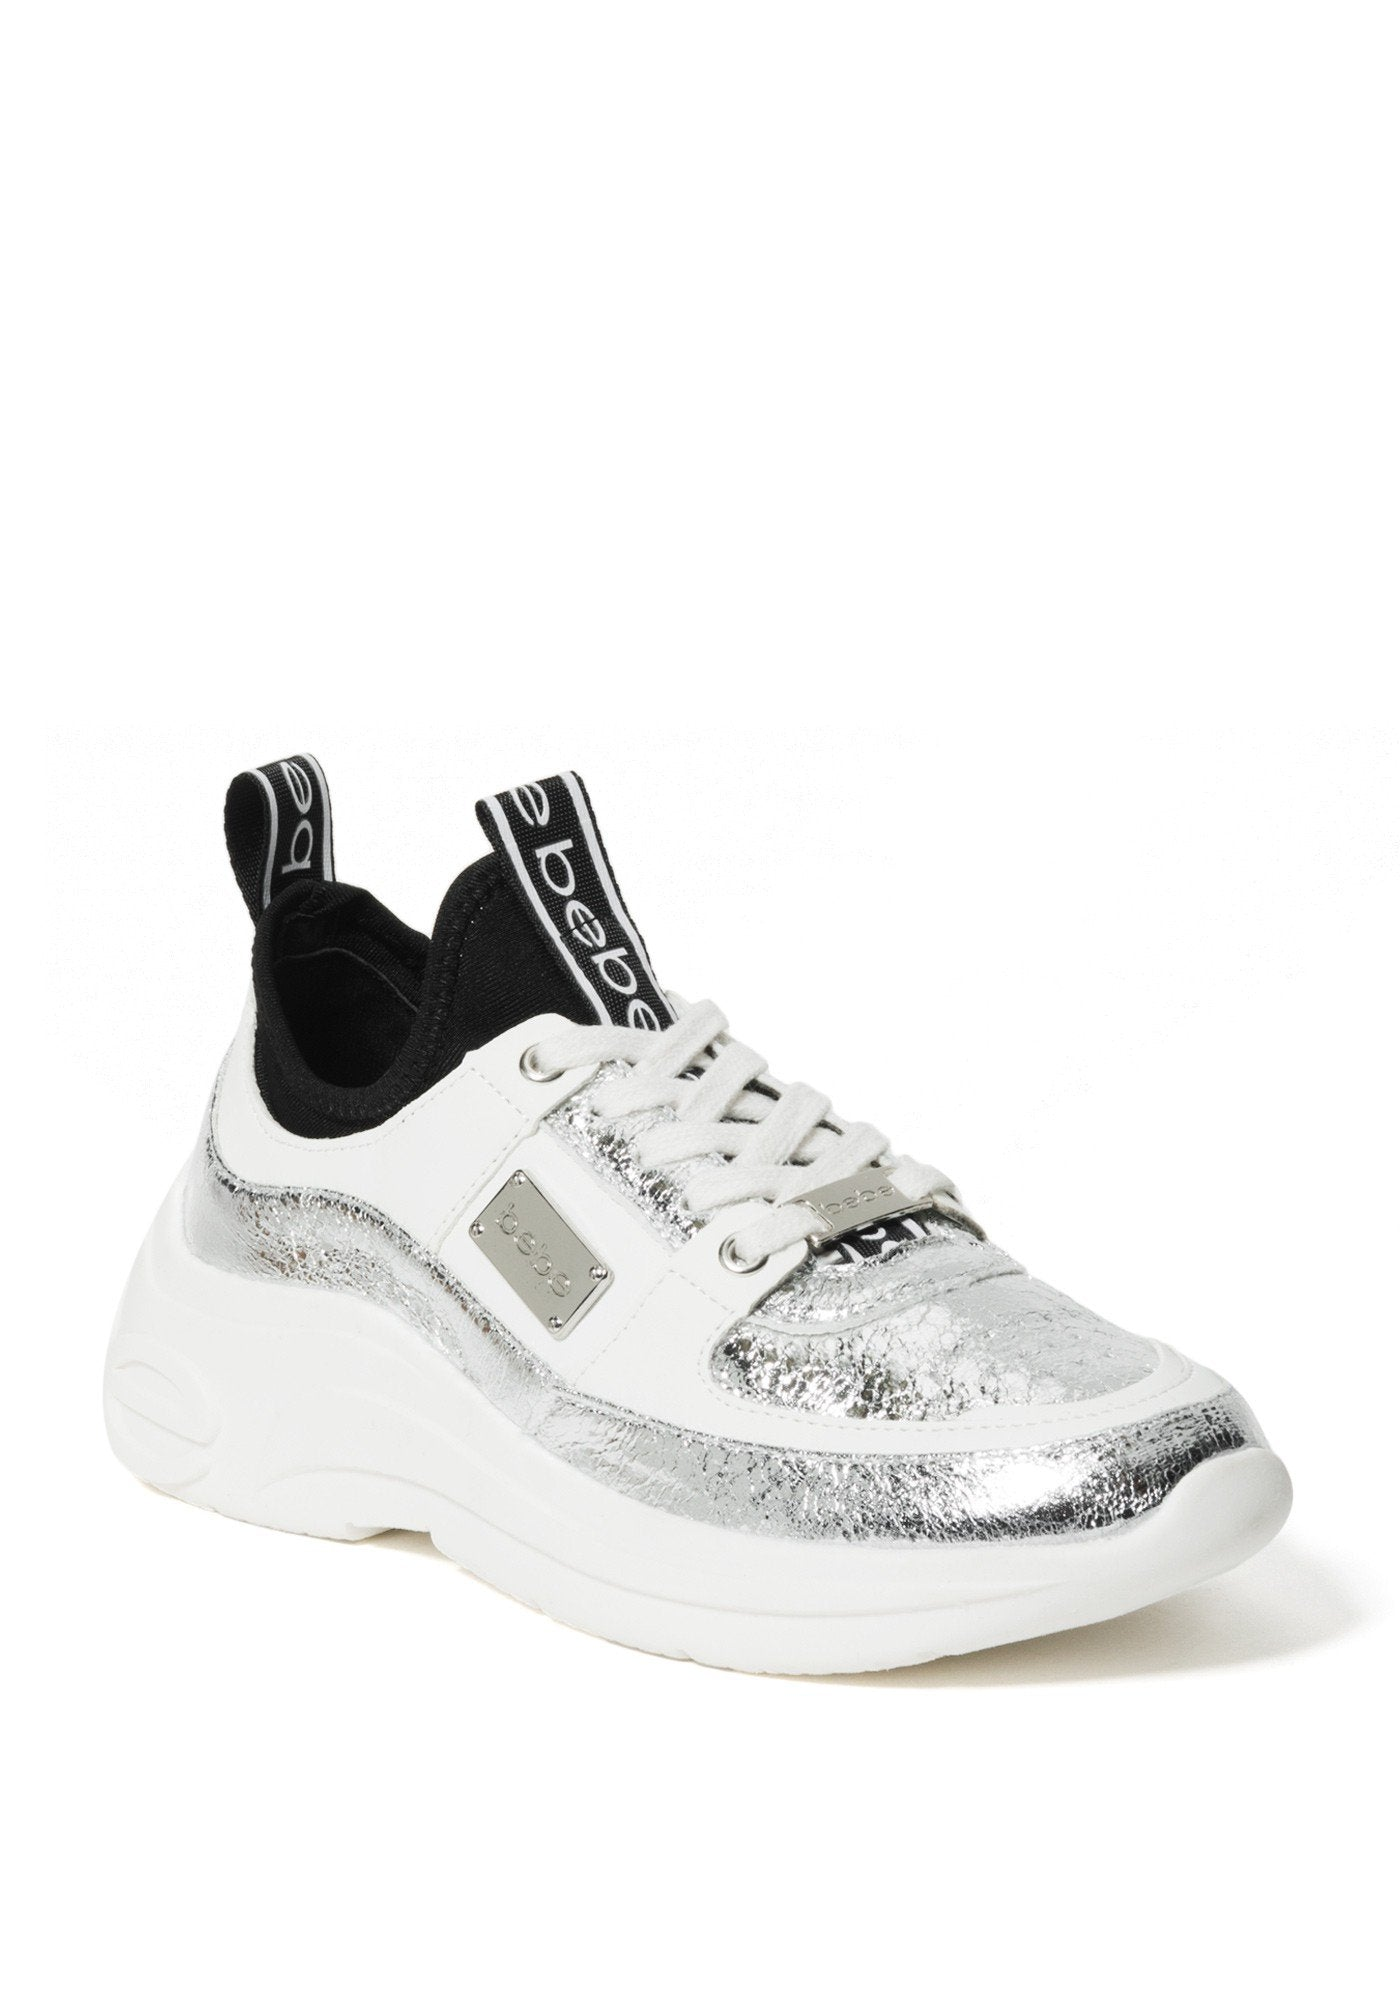 Bebe Women's Lealea Logo Sneakers, Size 6 in Silver/White Synthetic